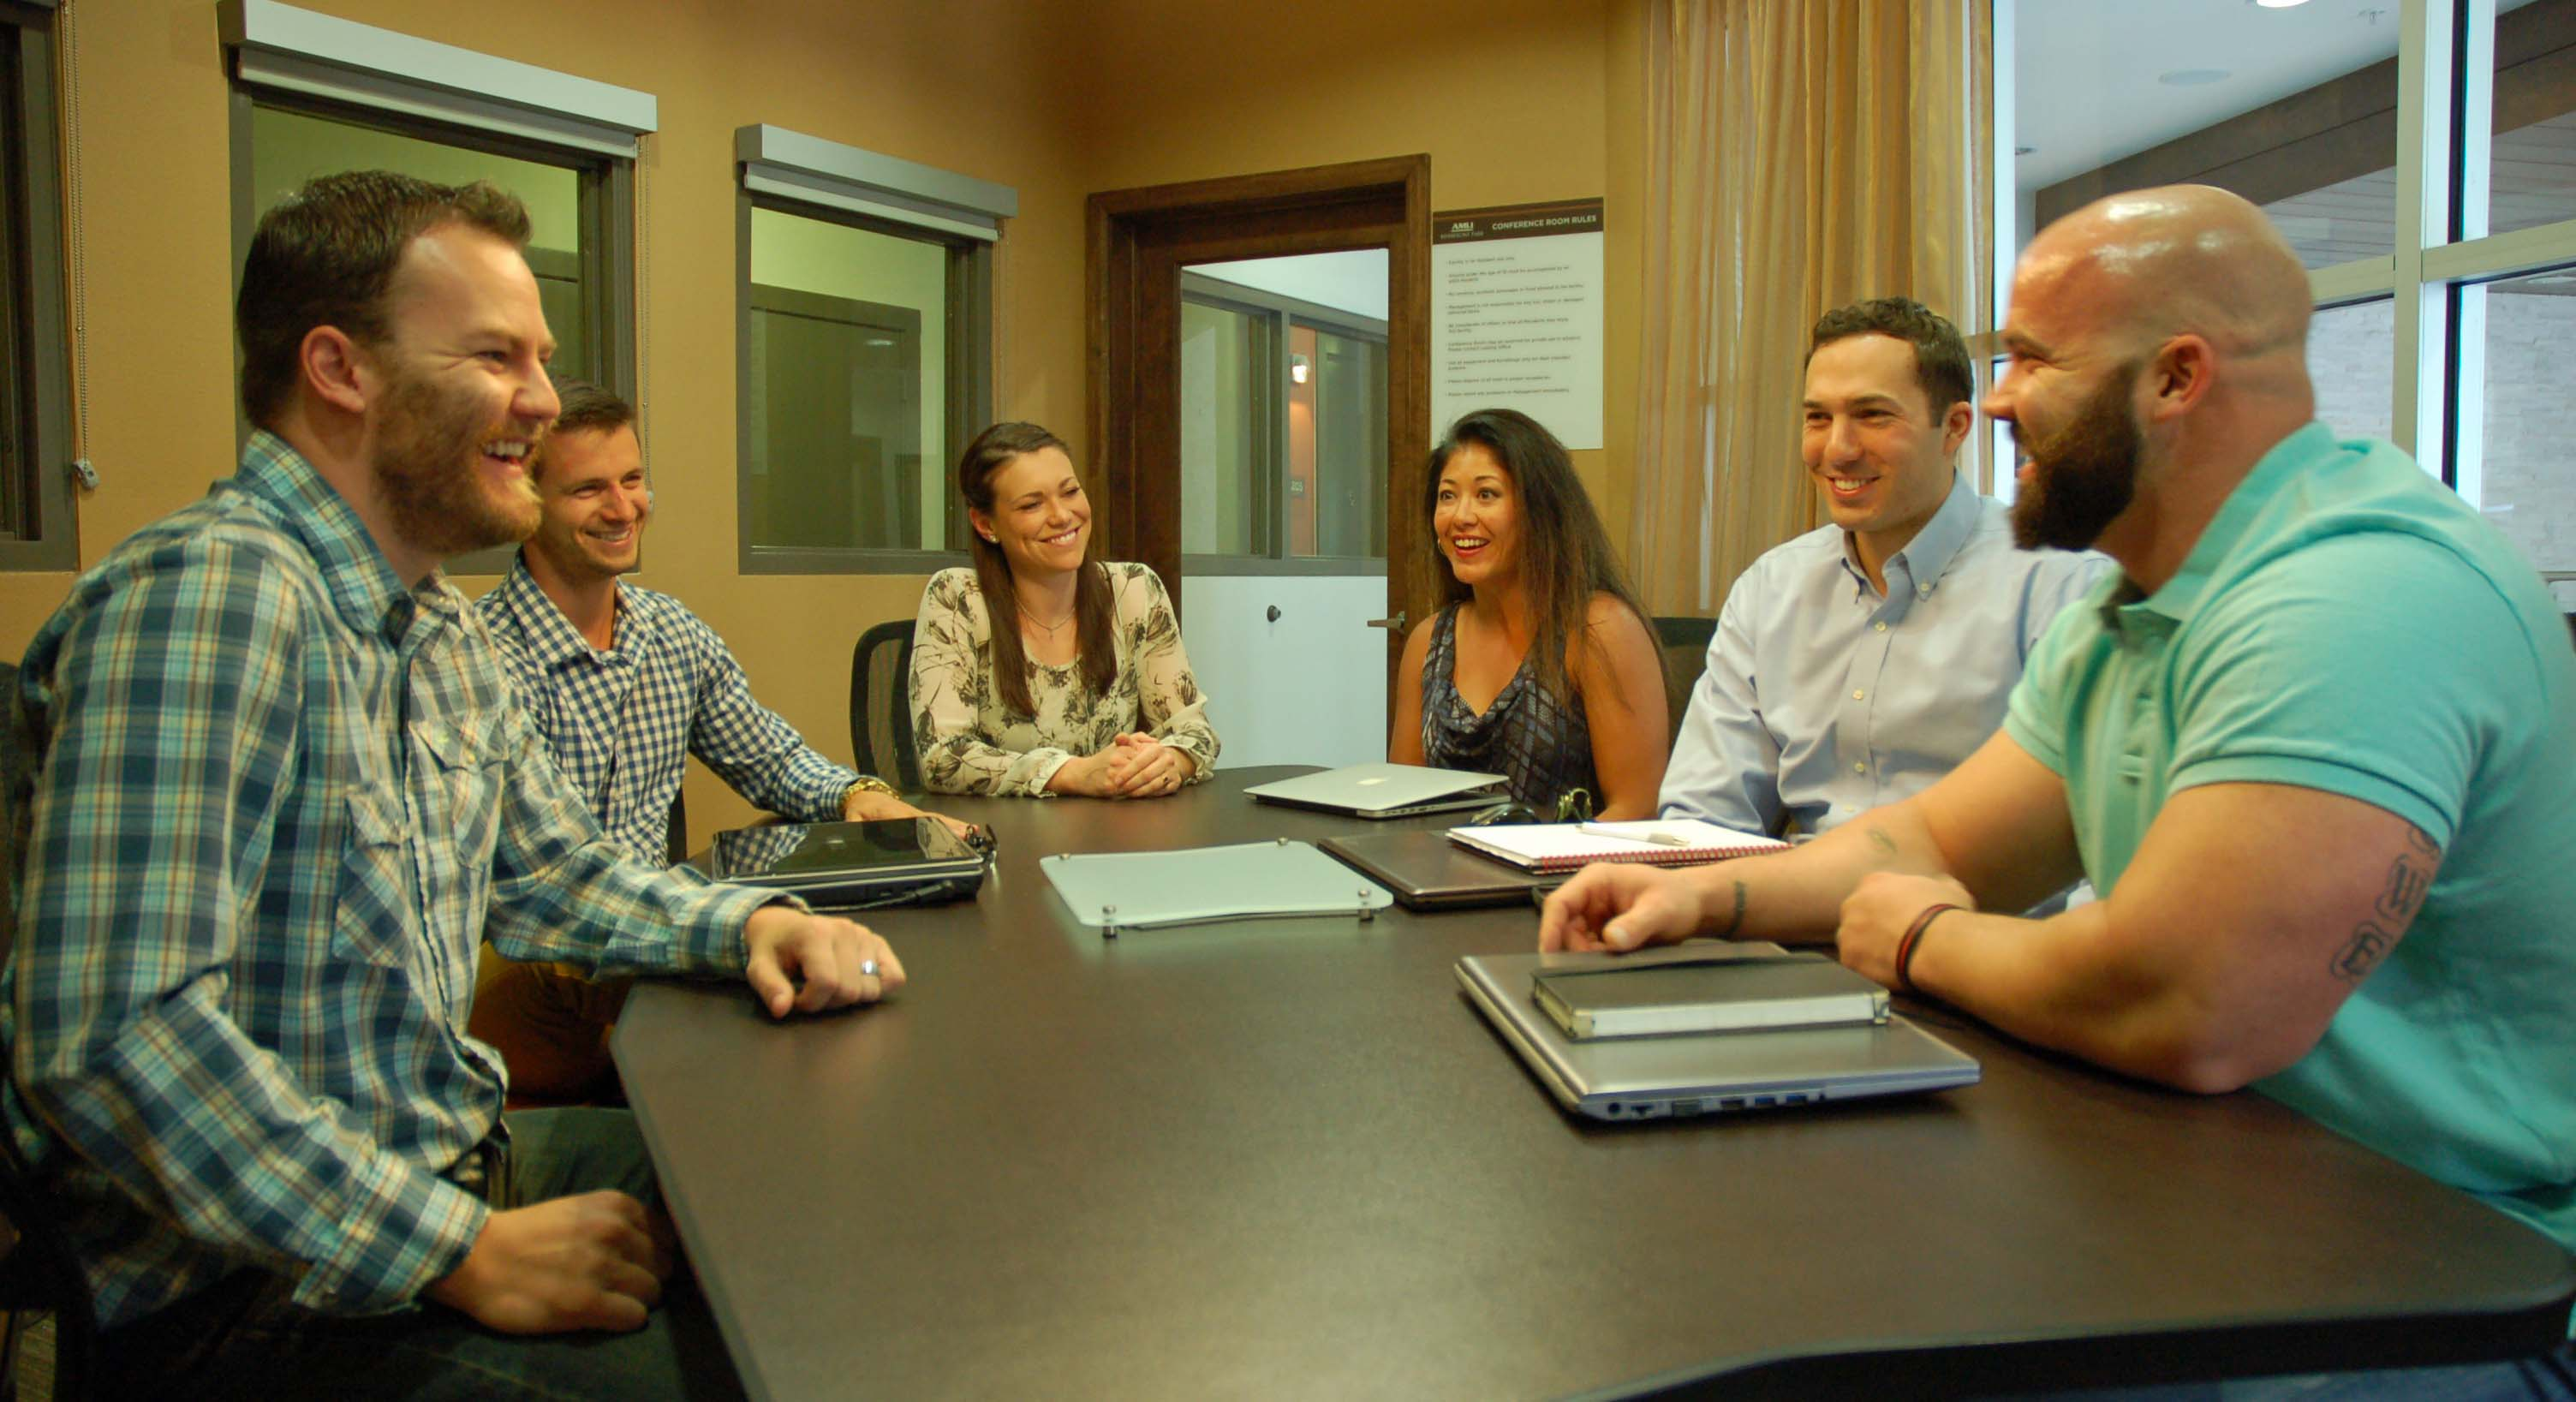 Matt (far right) and Amy Lowe (center left) start the day with their Denver-based business team.